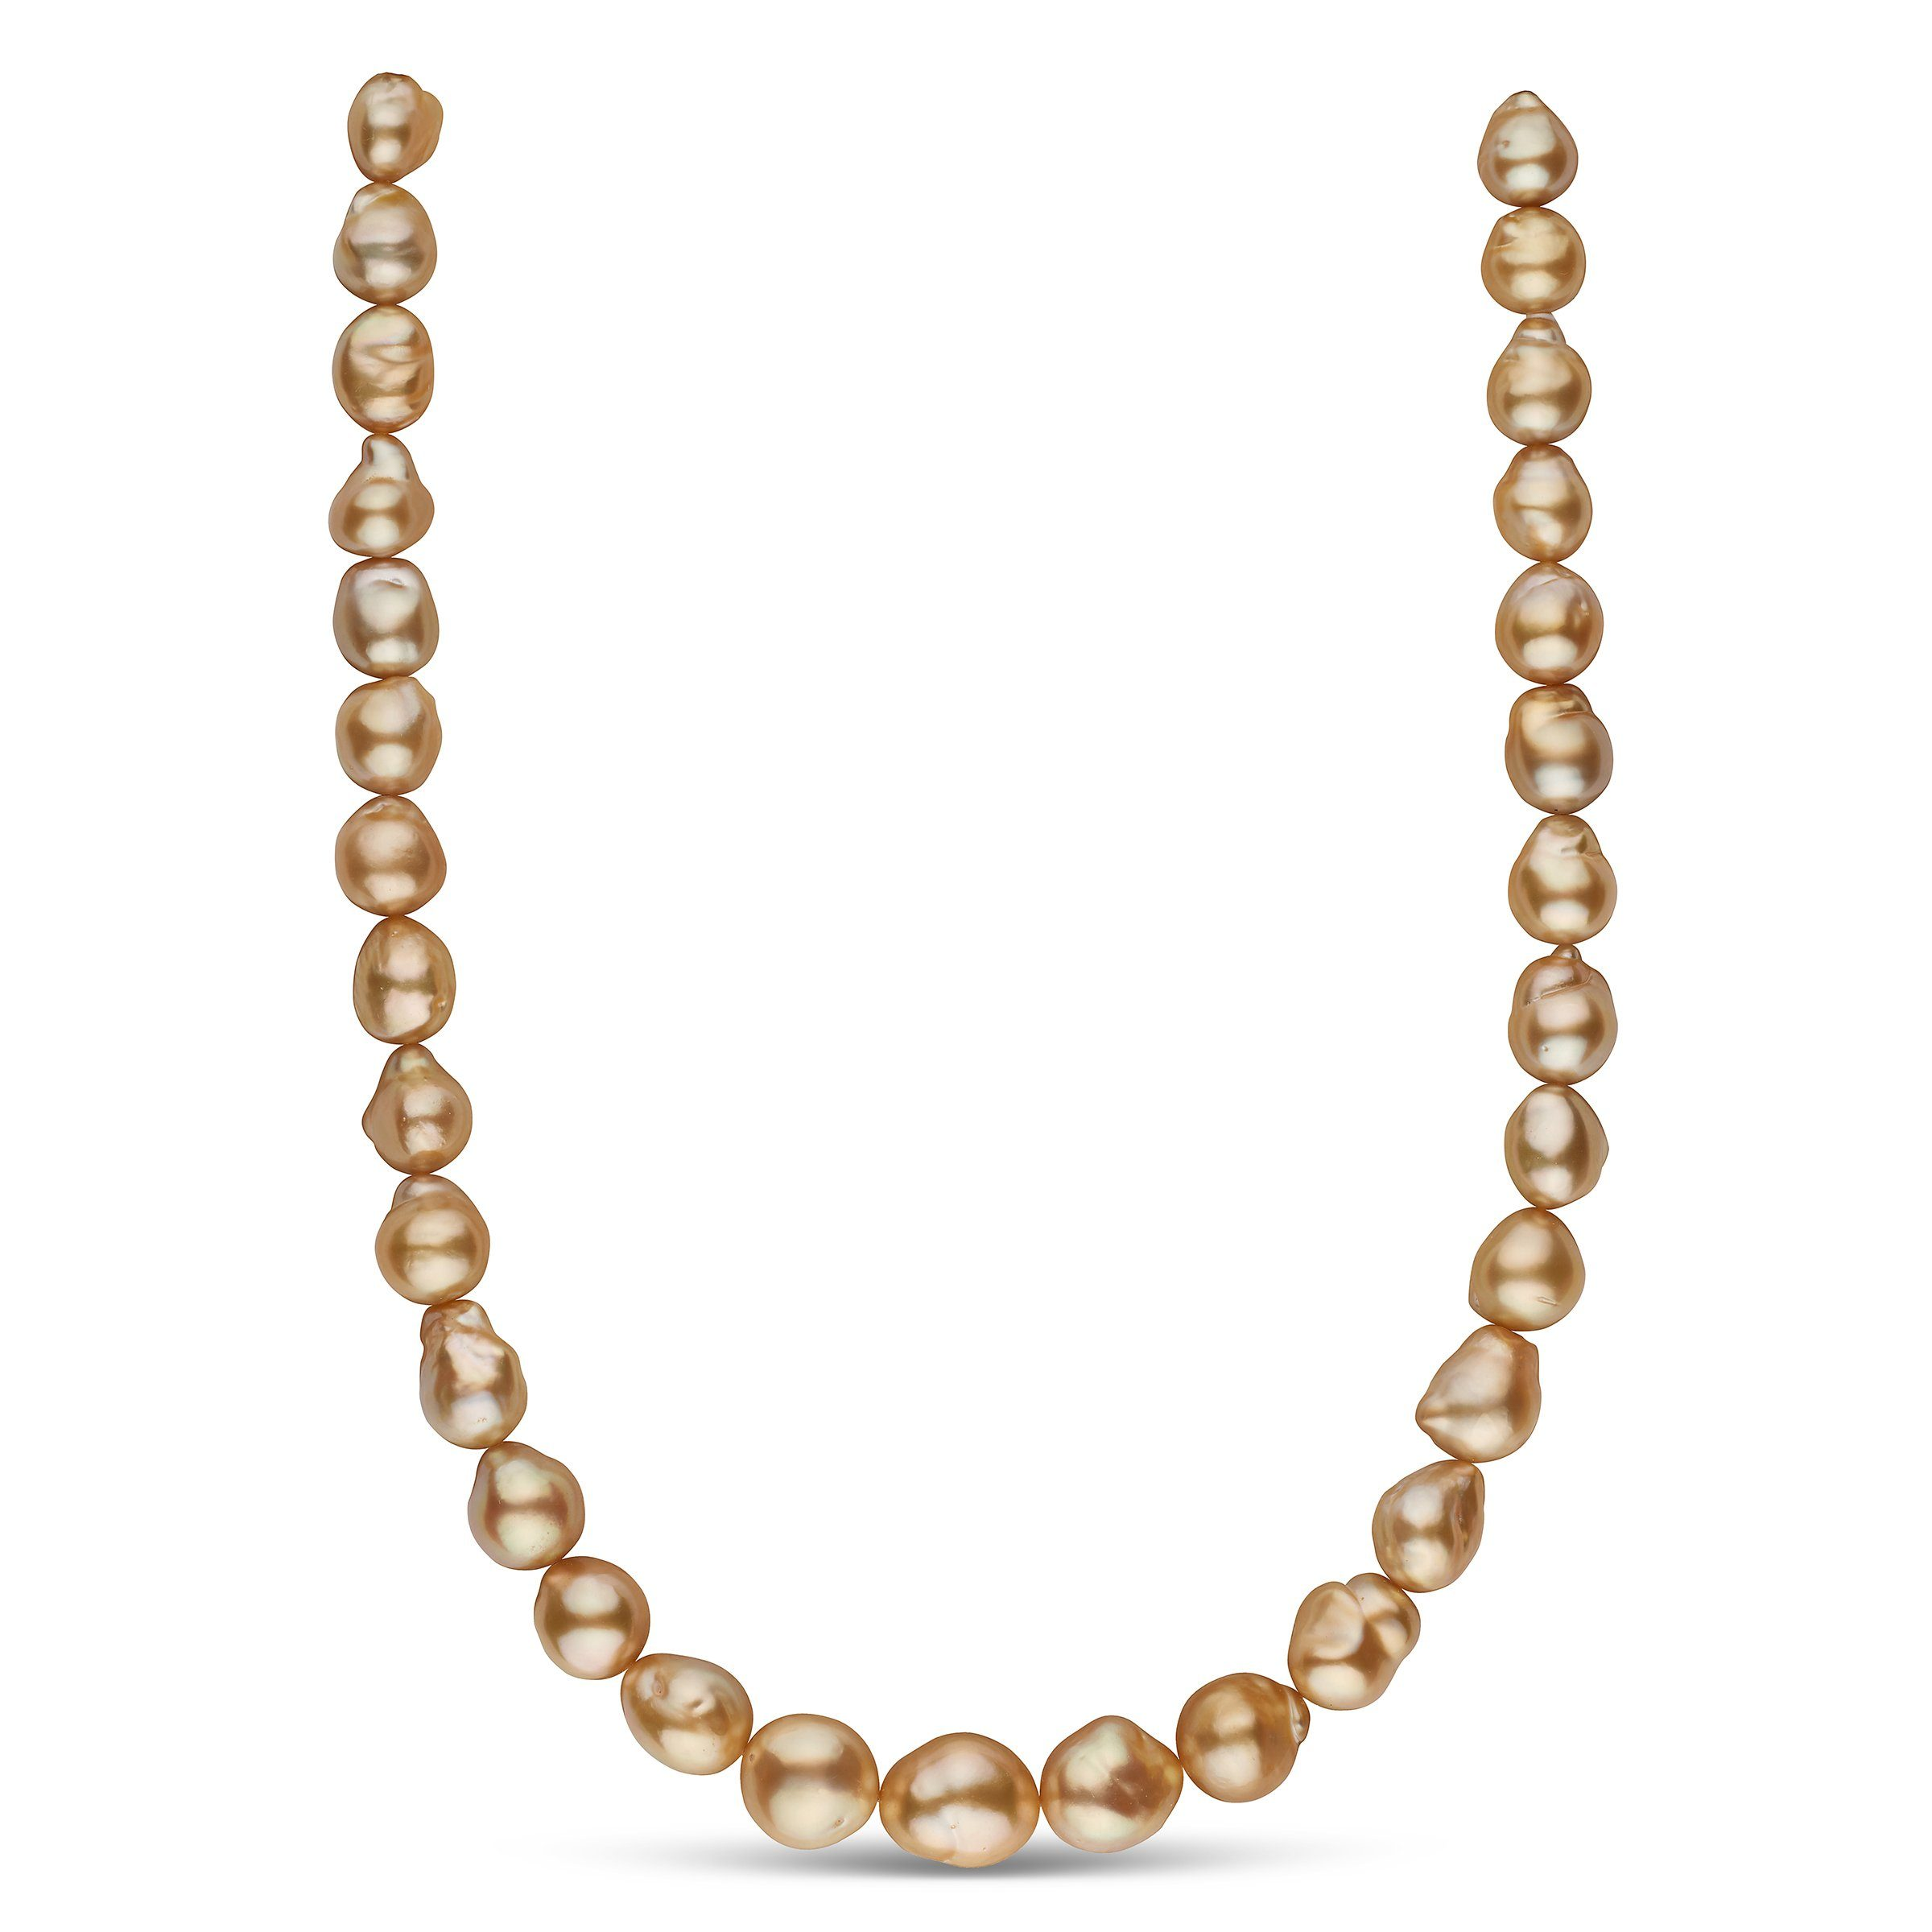 The Julie Andrews Golden South Sea Pearl Necklace